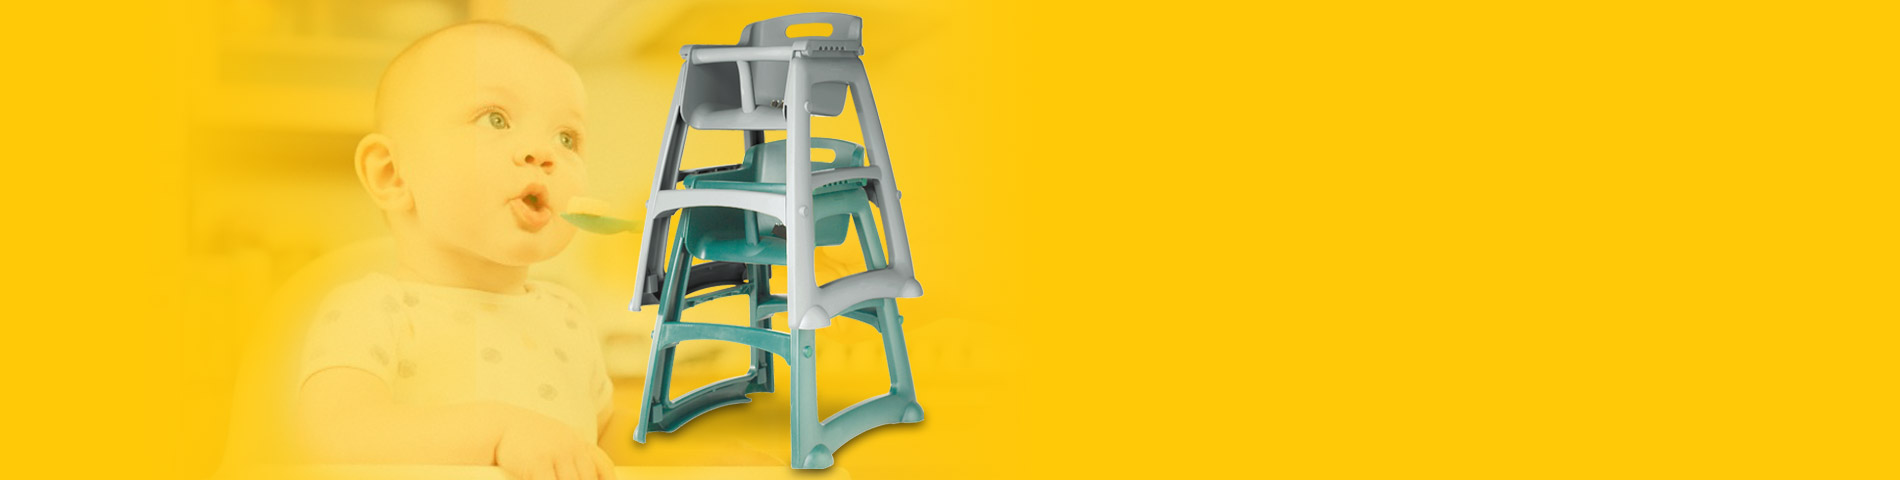 Baby Sturdy Chair RB-7806